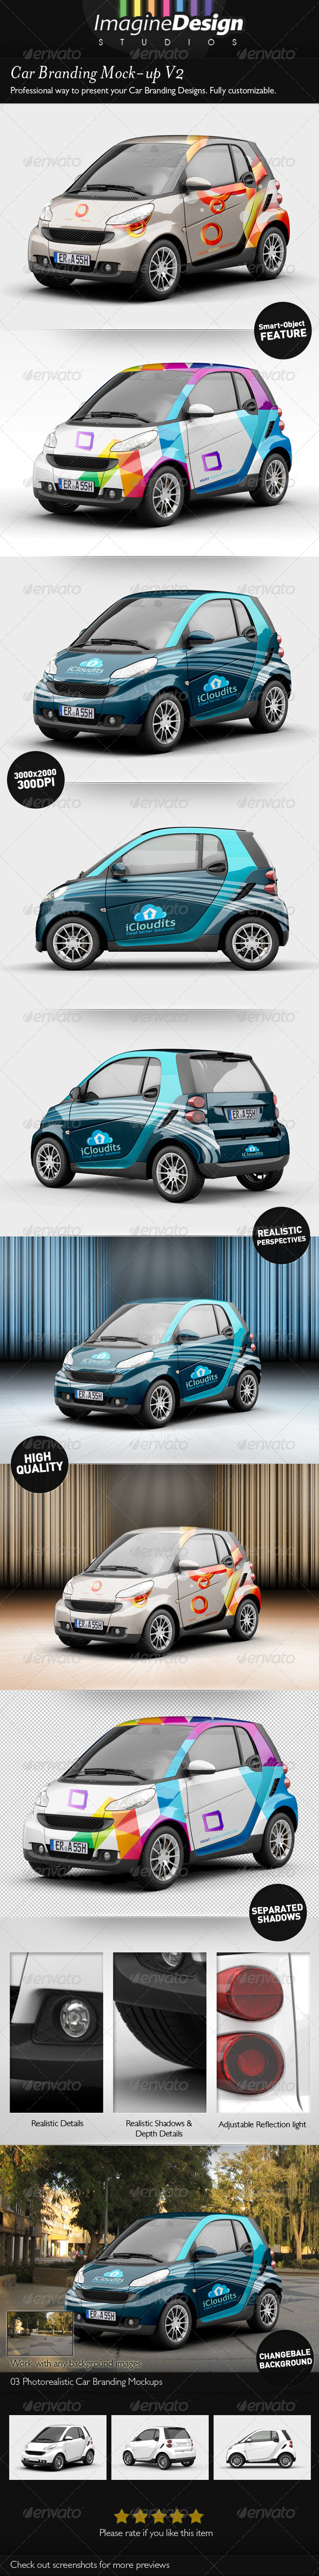 Car Branding Mock-up V2